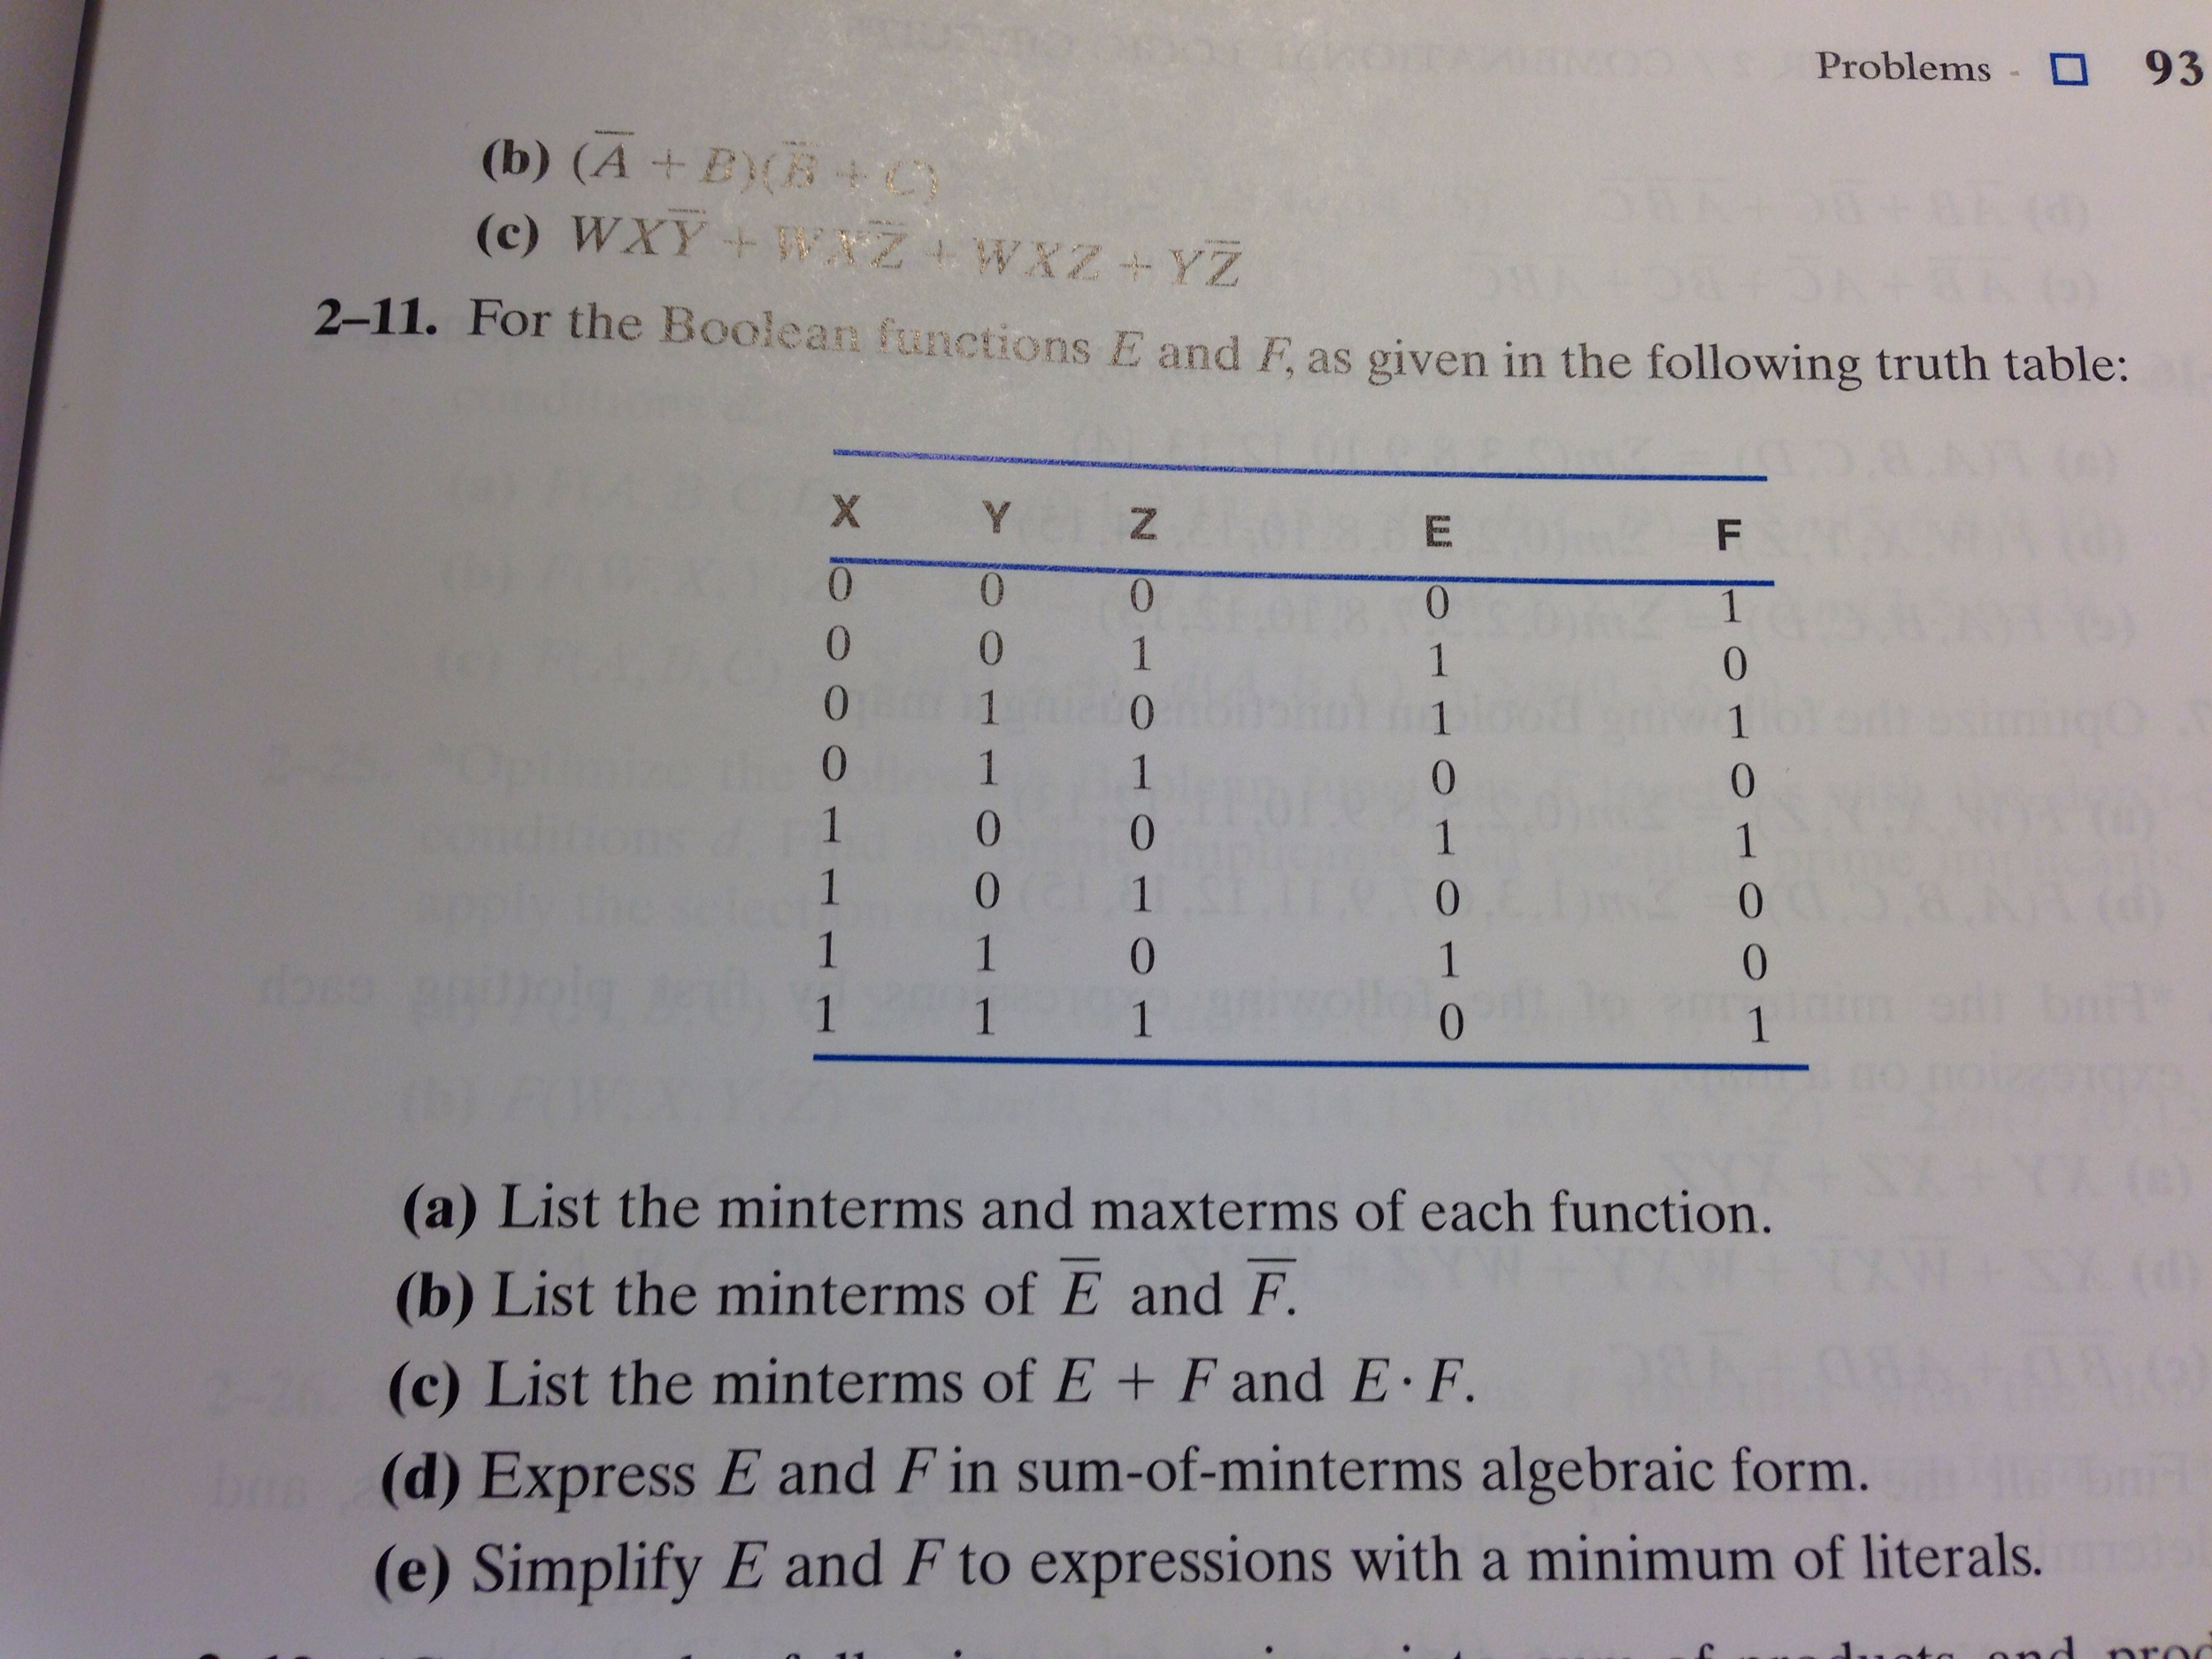 For the Boolean functions E and F, as given in th